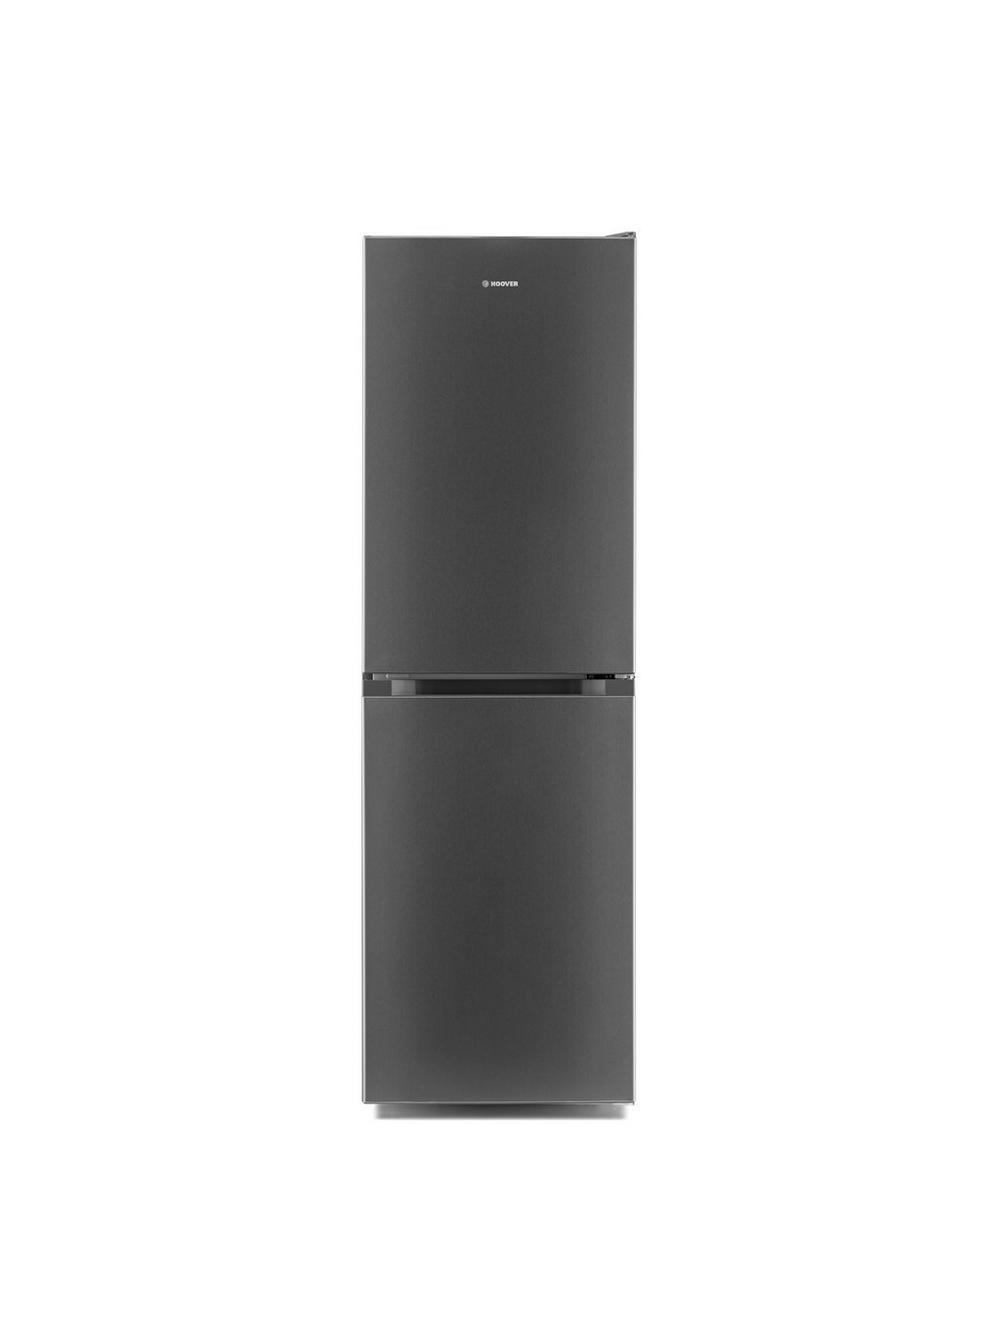 Hoover HMCL5172S - Silver Frost Fridge Freezer